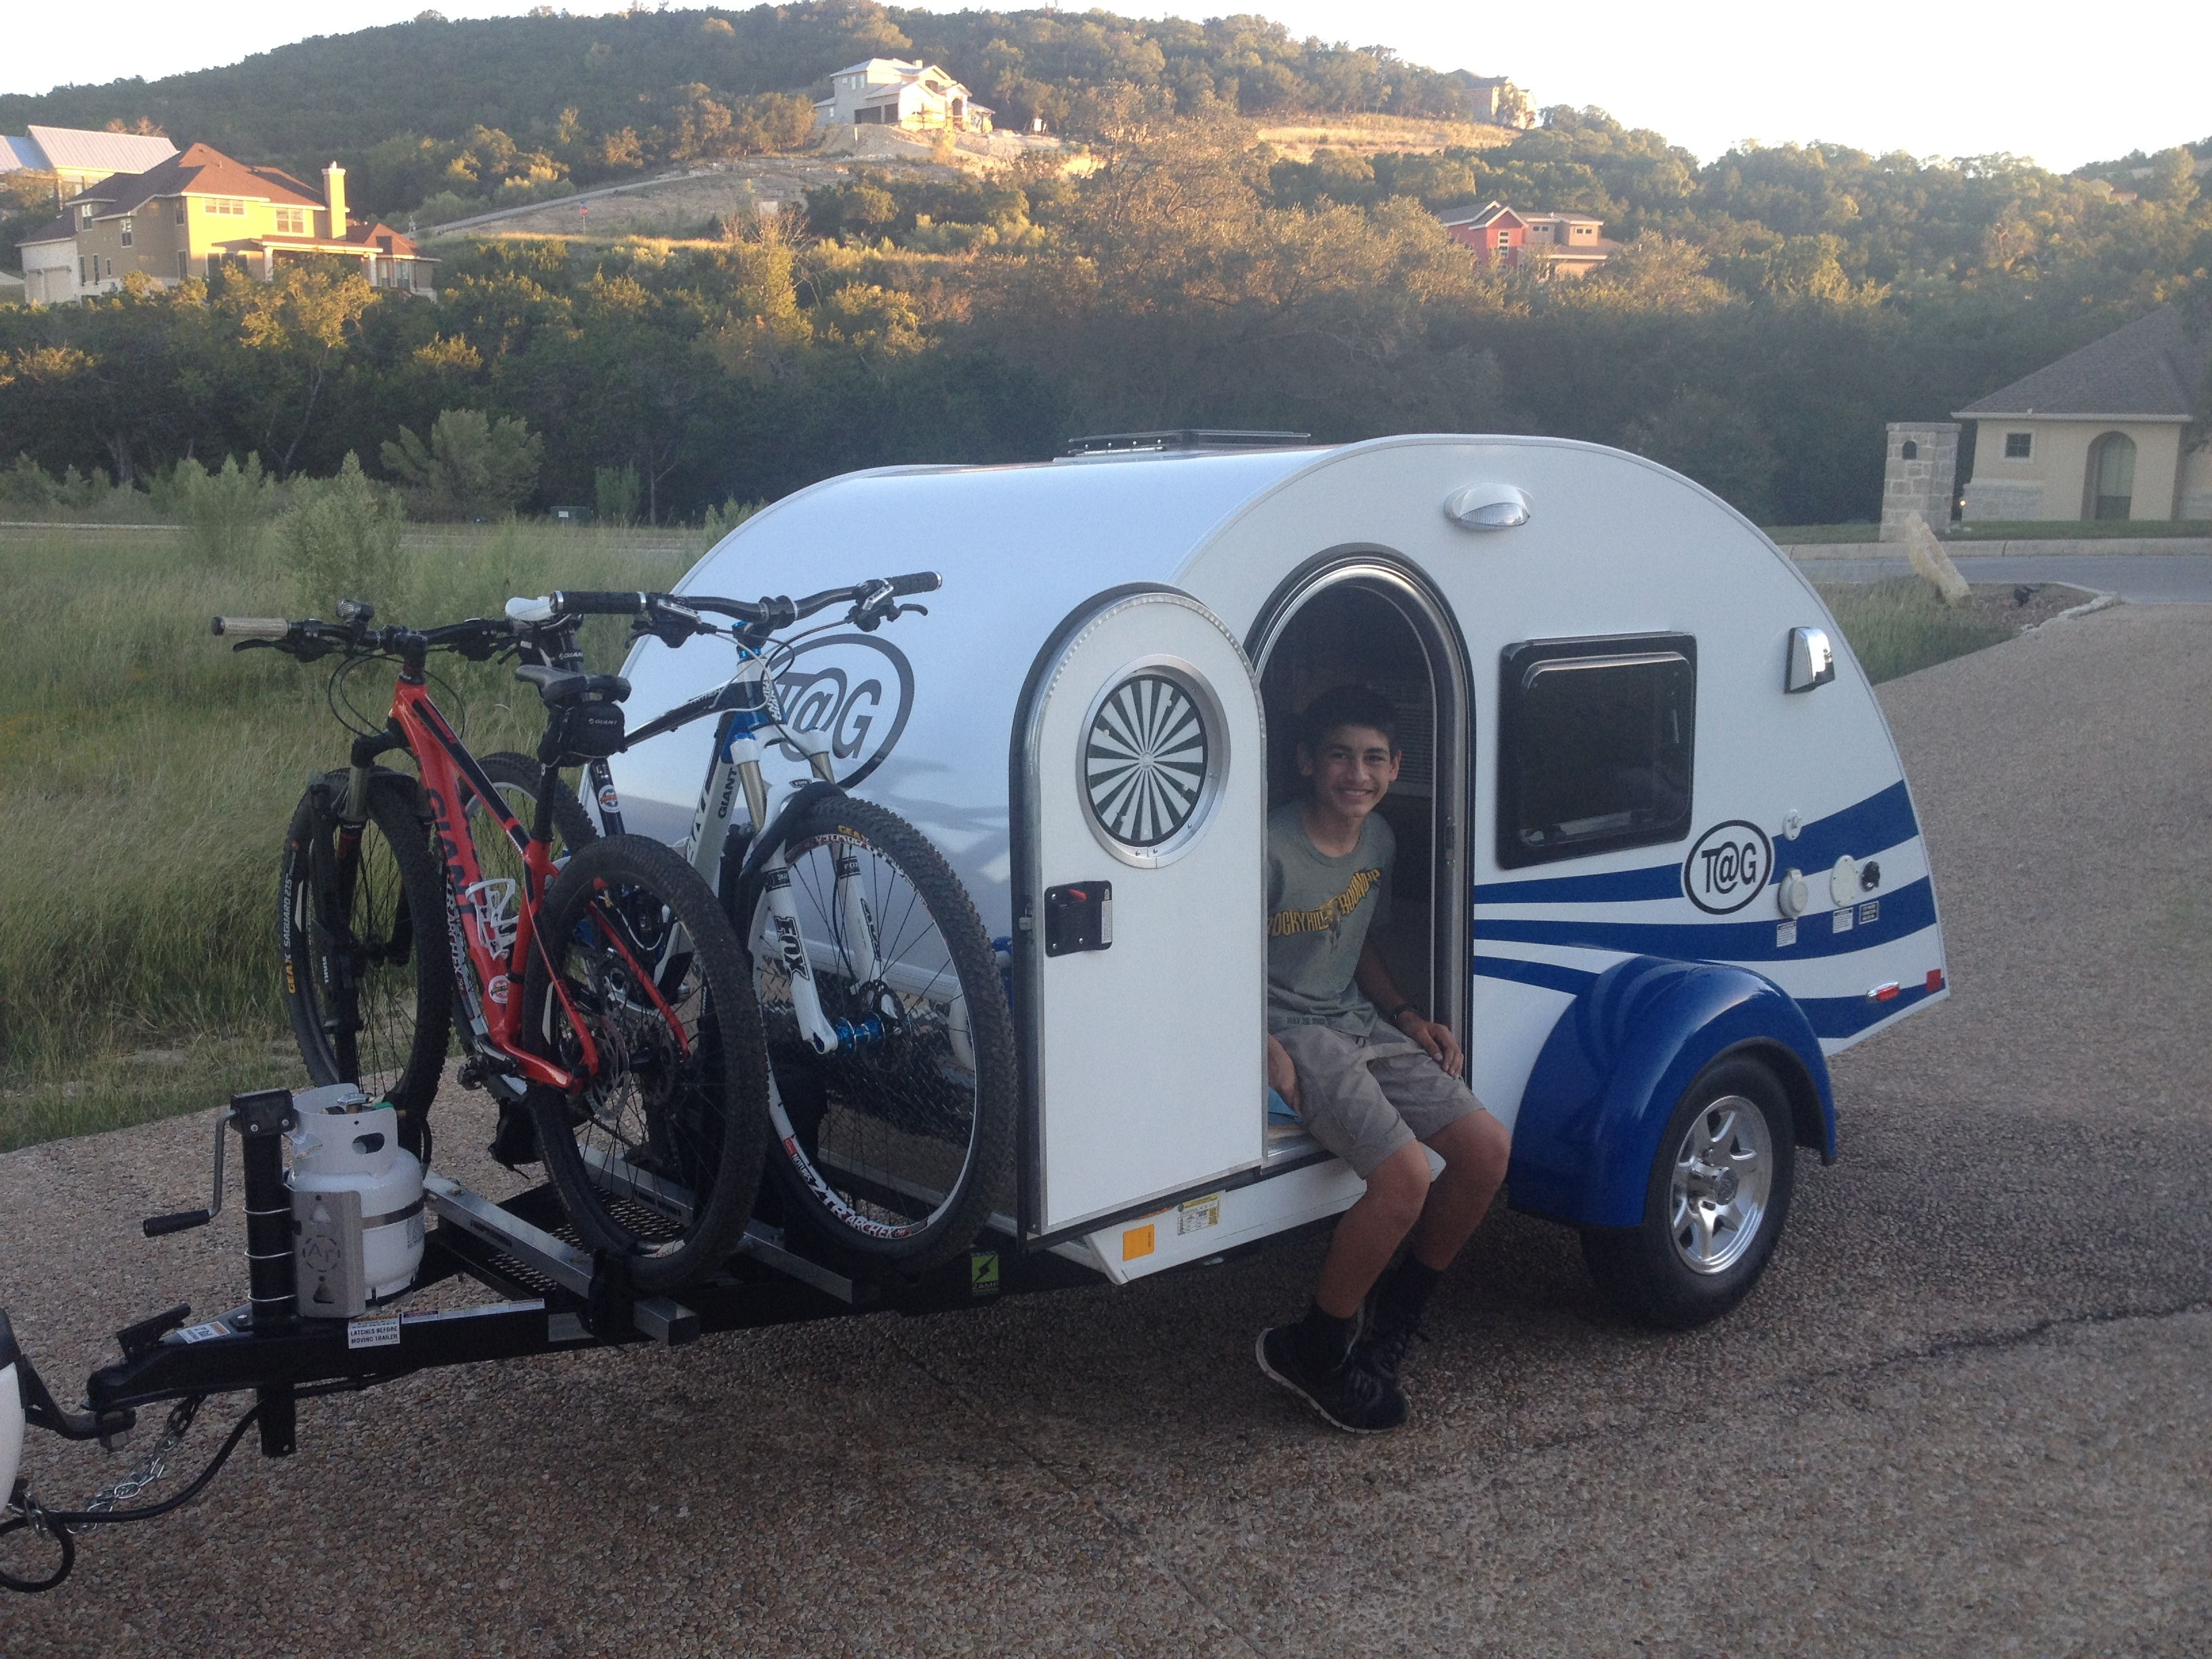 Bike Camper Trailer Little Guy Camper Towing Bikes Google Search Teardrop Redesign